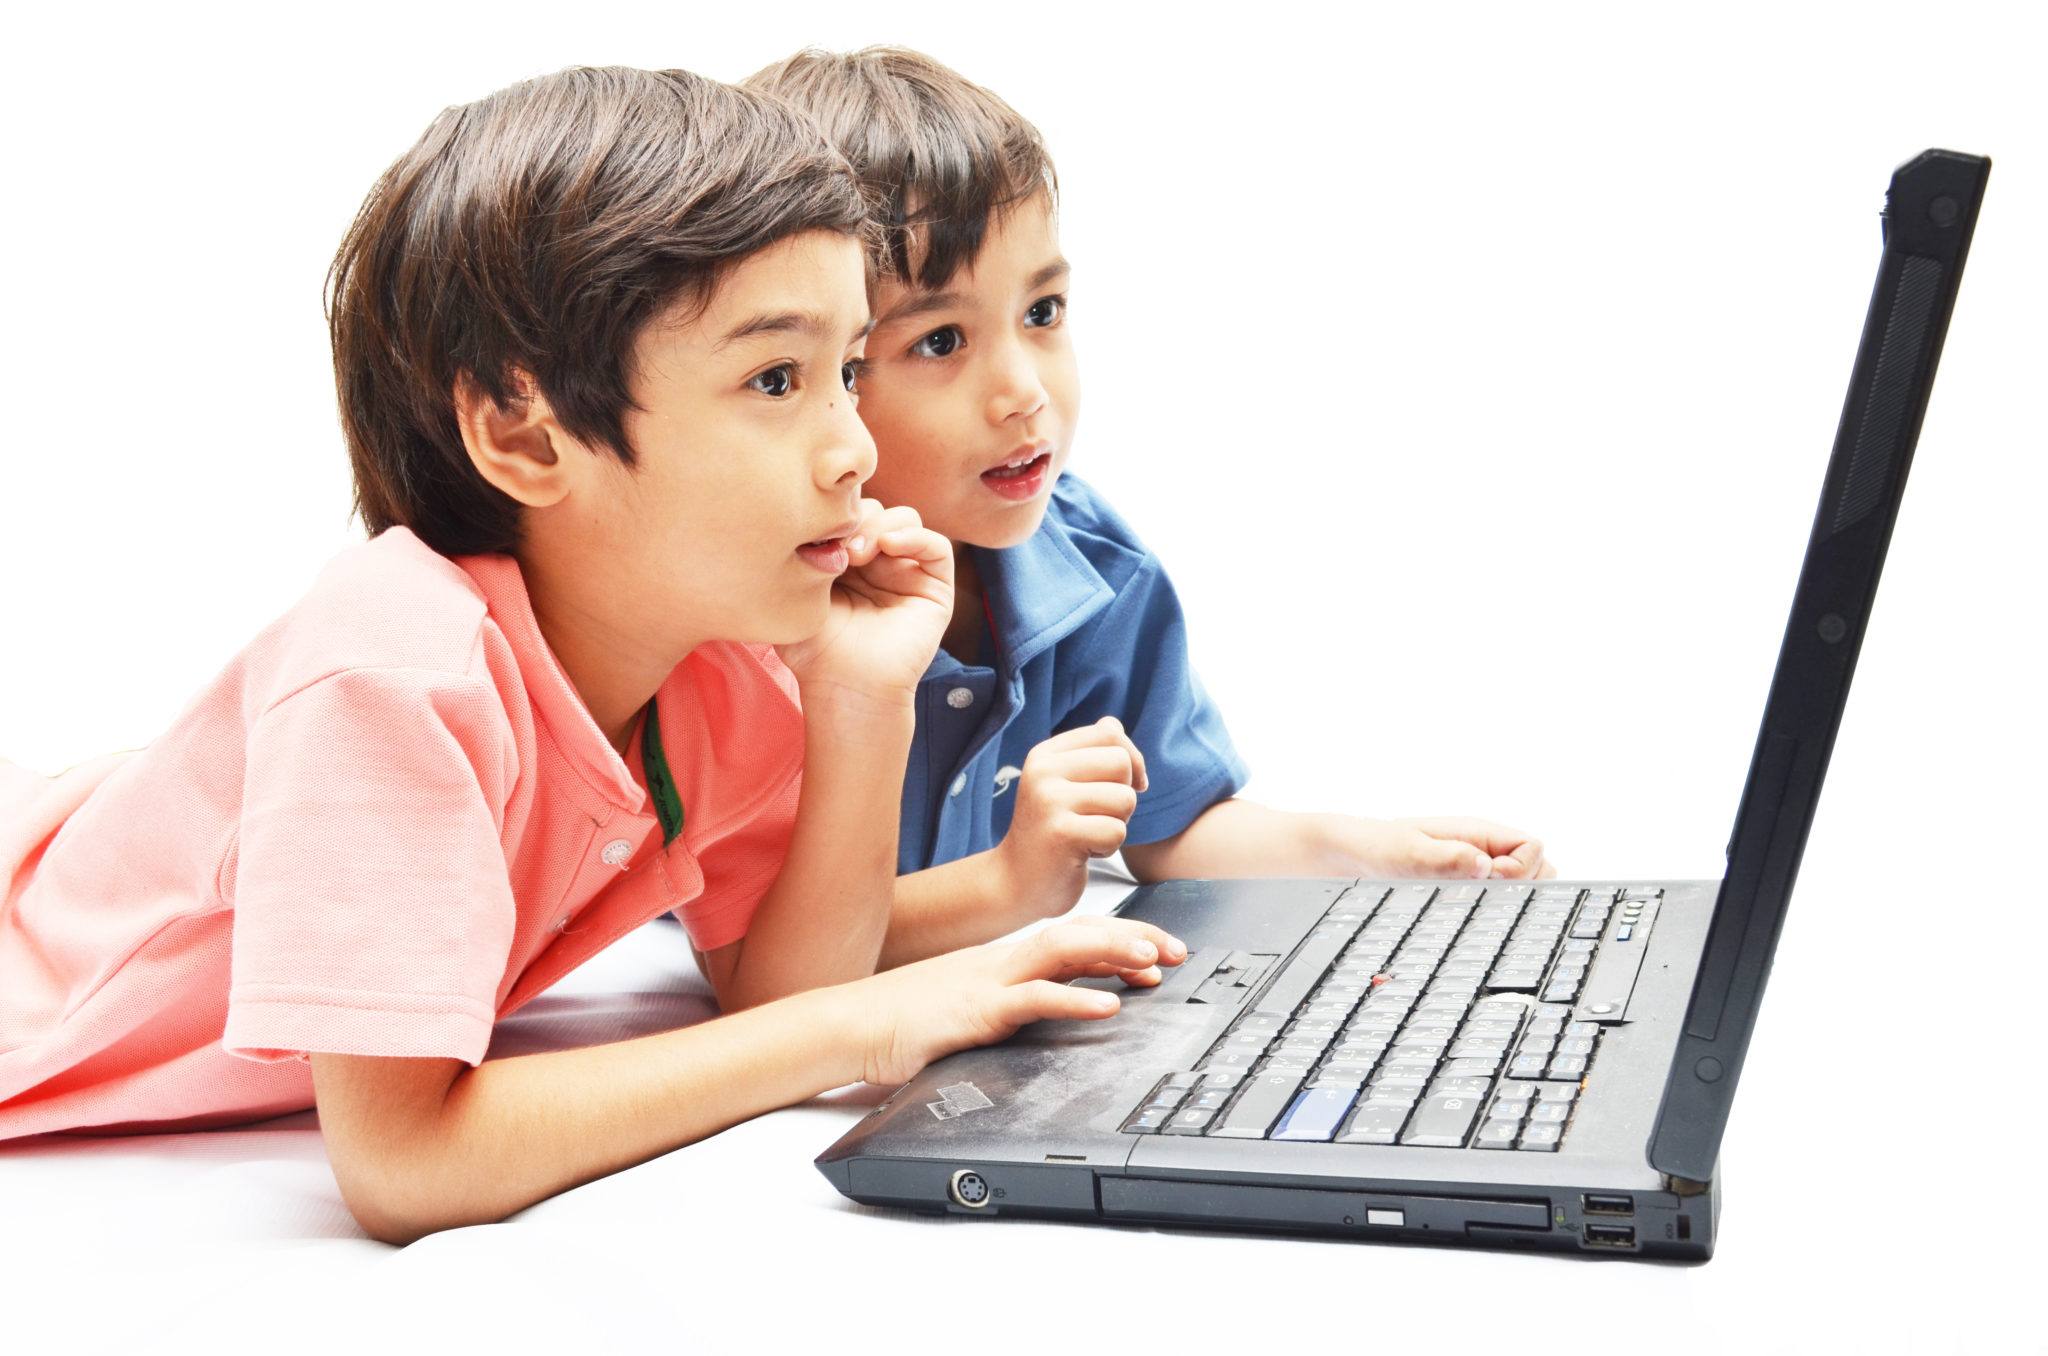 5 Ways to Protect Kids Online from Dangerous and Inappropriate Media ...